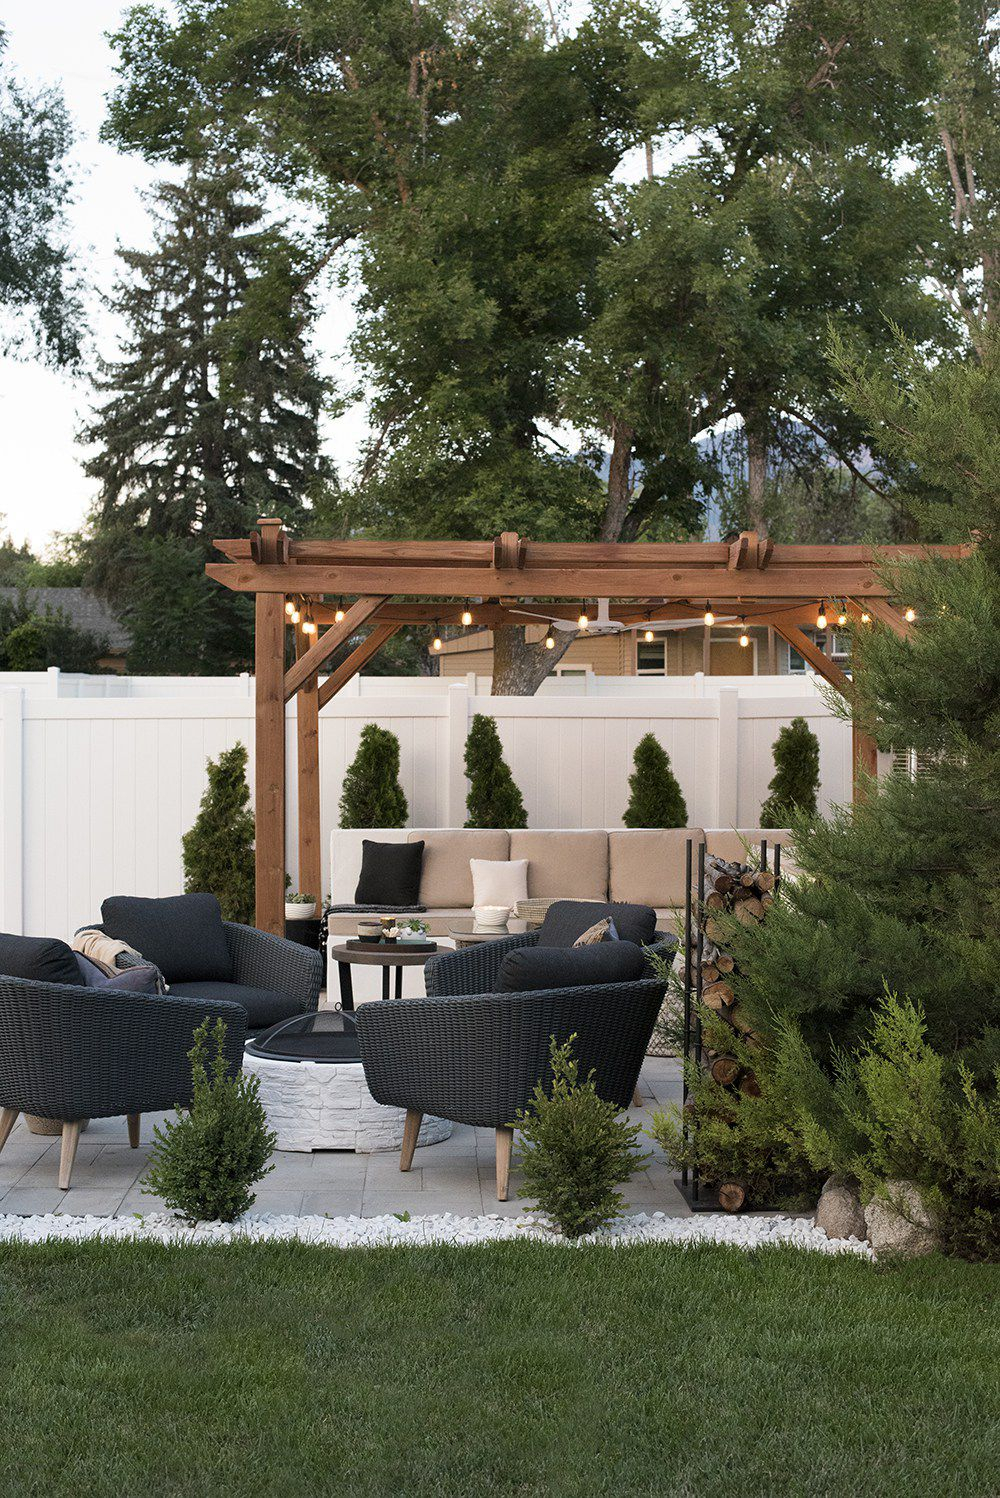 Simphome.com feature Some of best pergola ideas for the backyard how to use a pergola within backyard pergola ideas